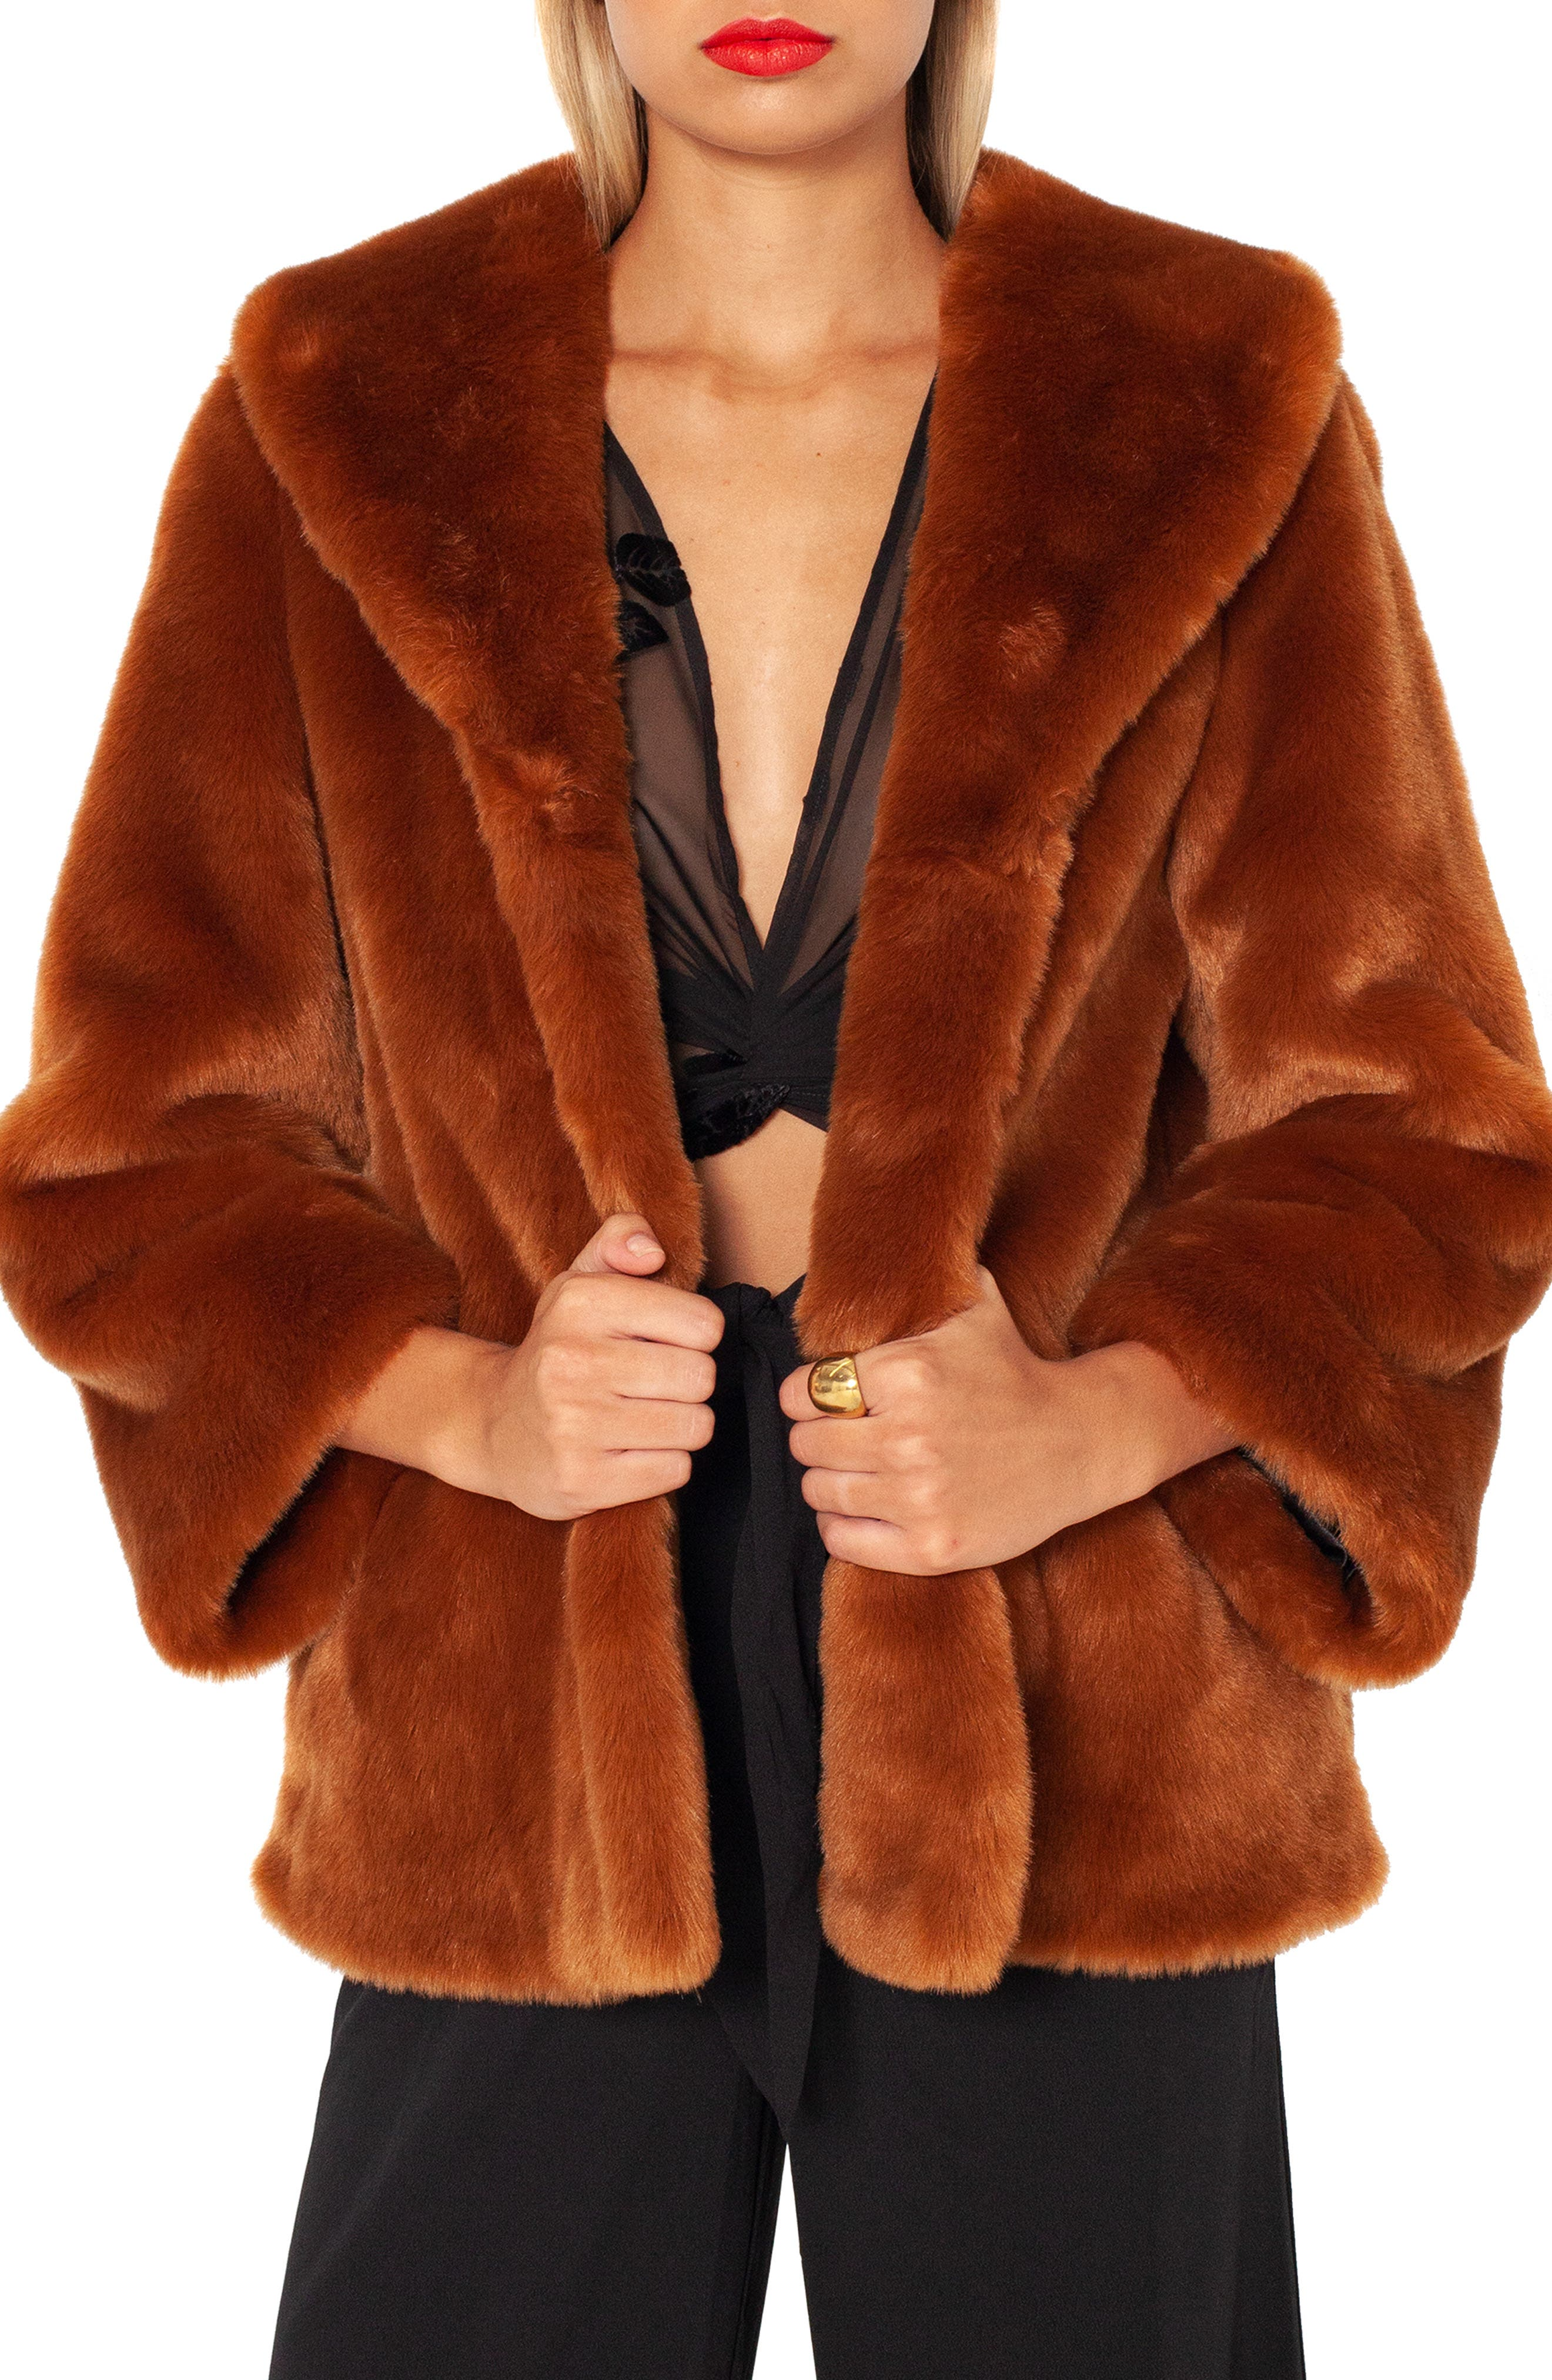 AMUSE SOCIETY Furever Mine Faux Fur Jacket in Camel